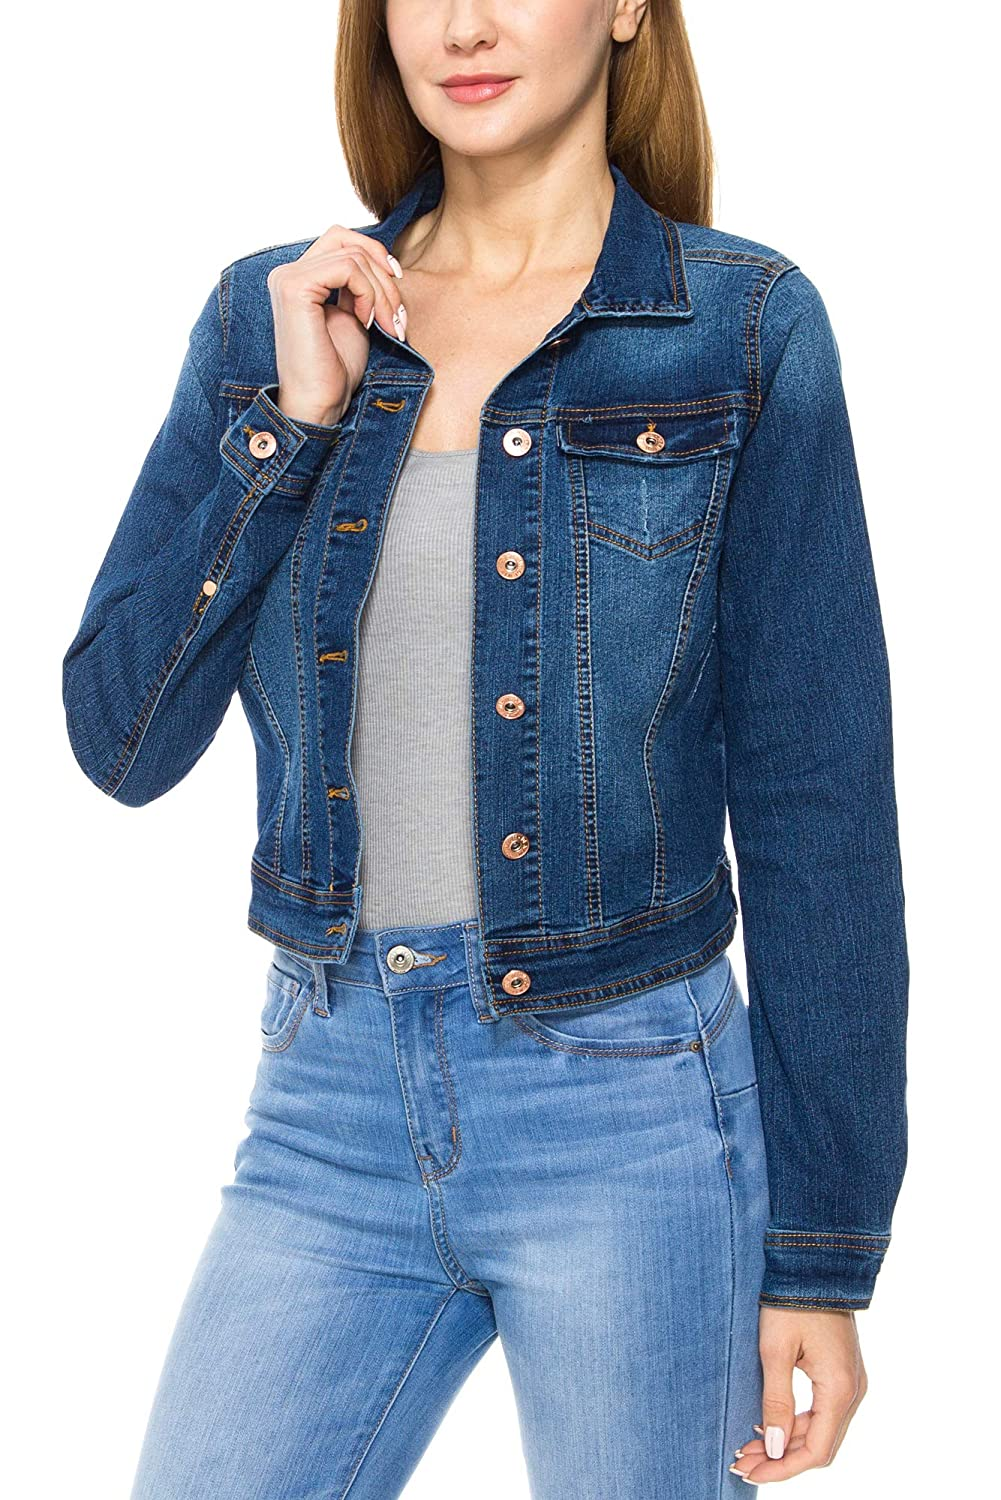 C027_denimbluee KAYLYN KAYDEN KLKD Women's Long Sleeve Layered Drawstring Denim Button Down Vest Jacket with Hoodie